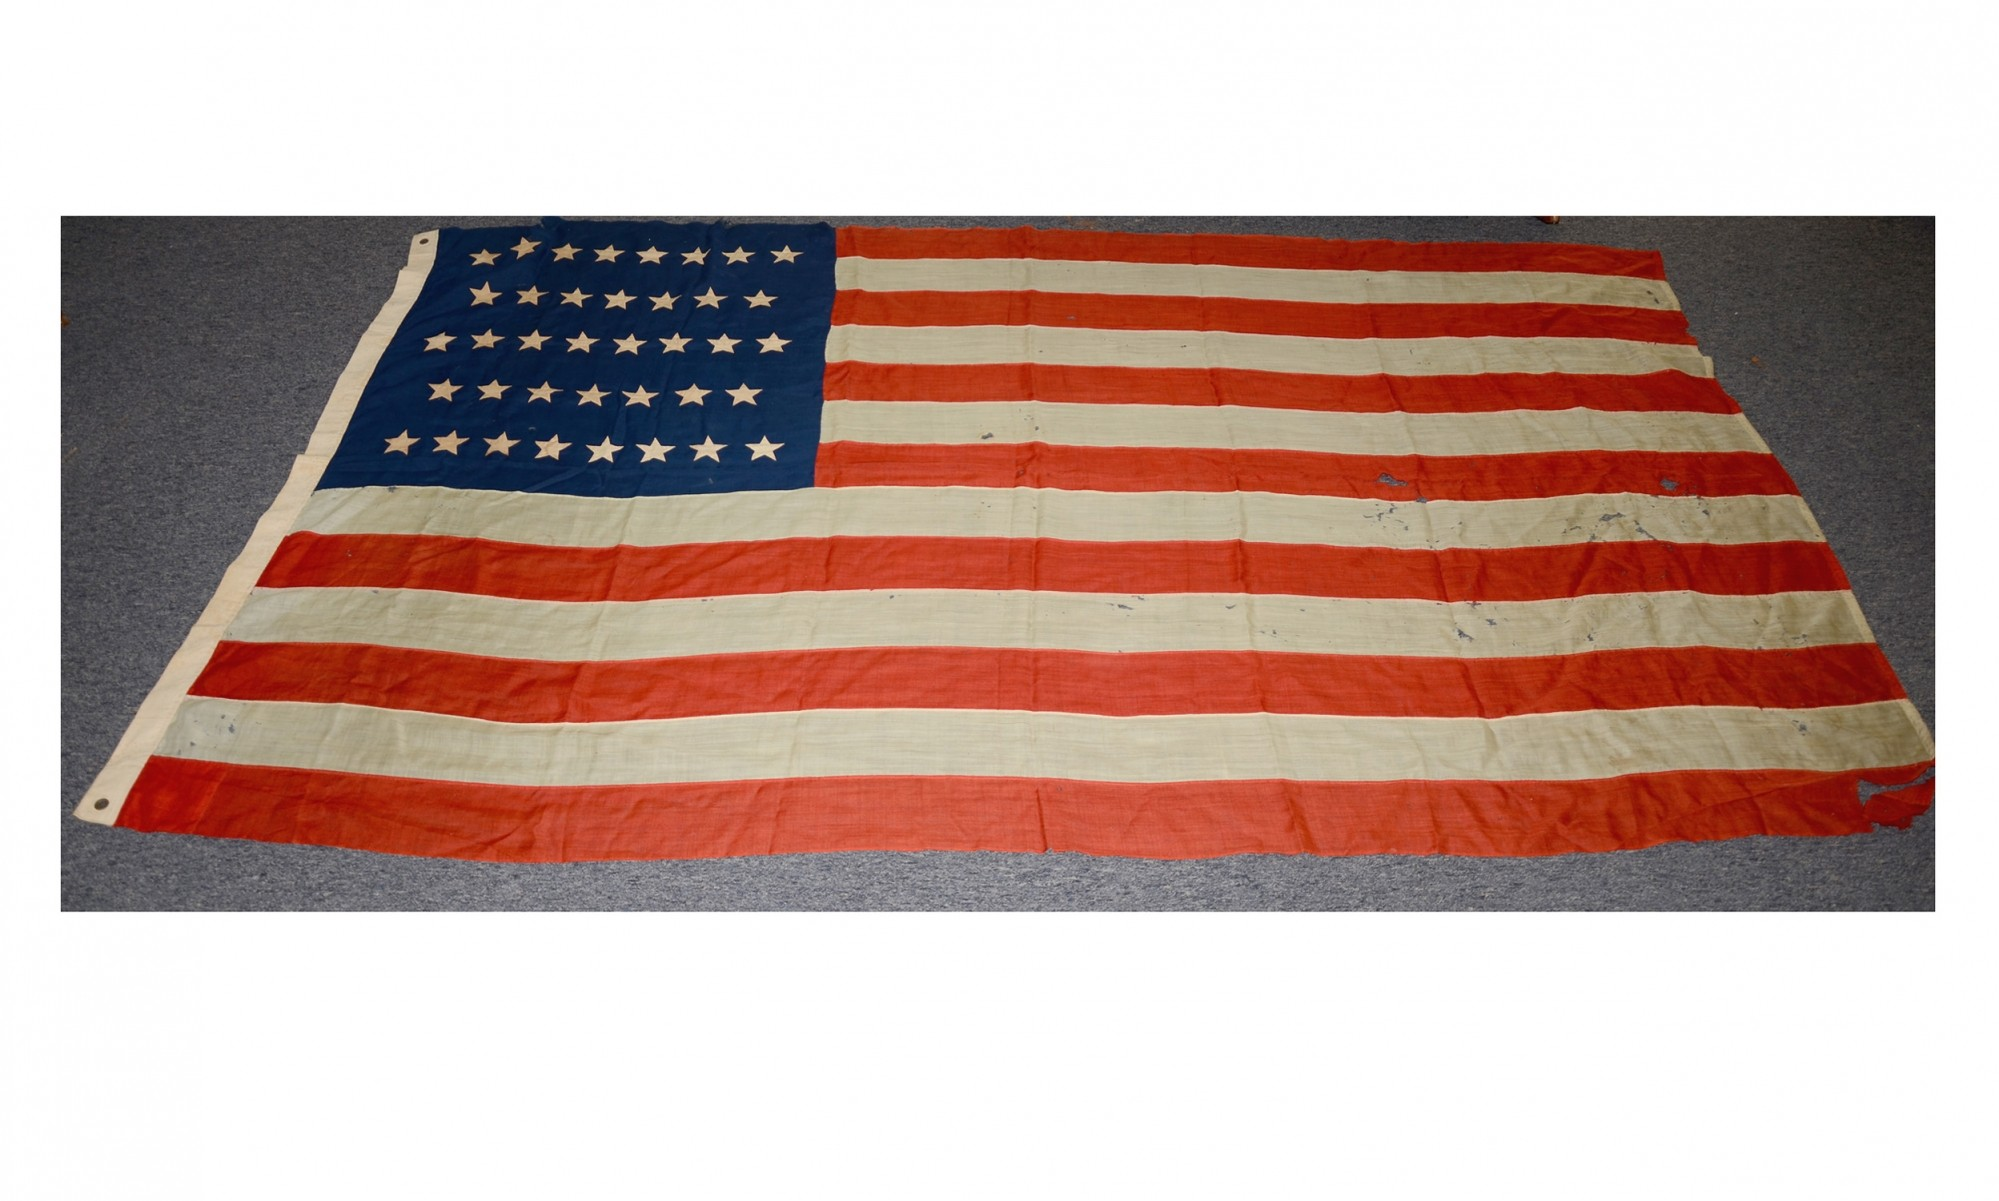 38 STAR US FLAG USED FROM 1877-1890